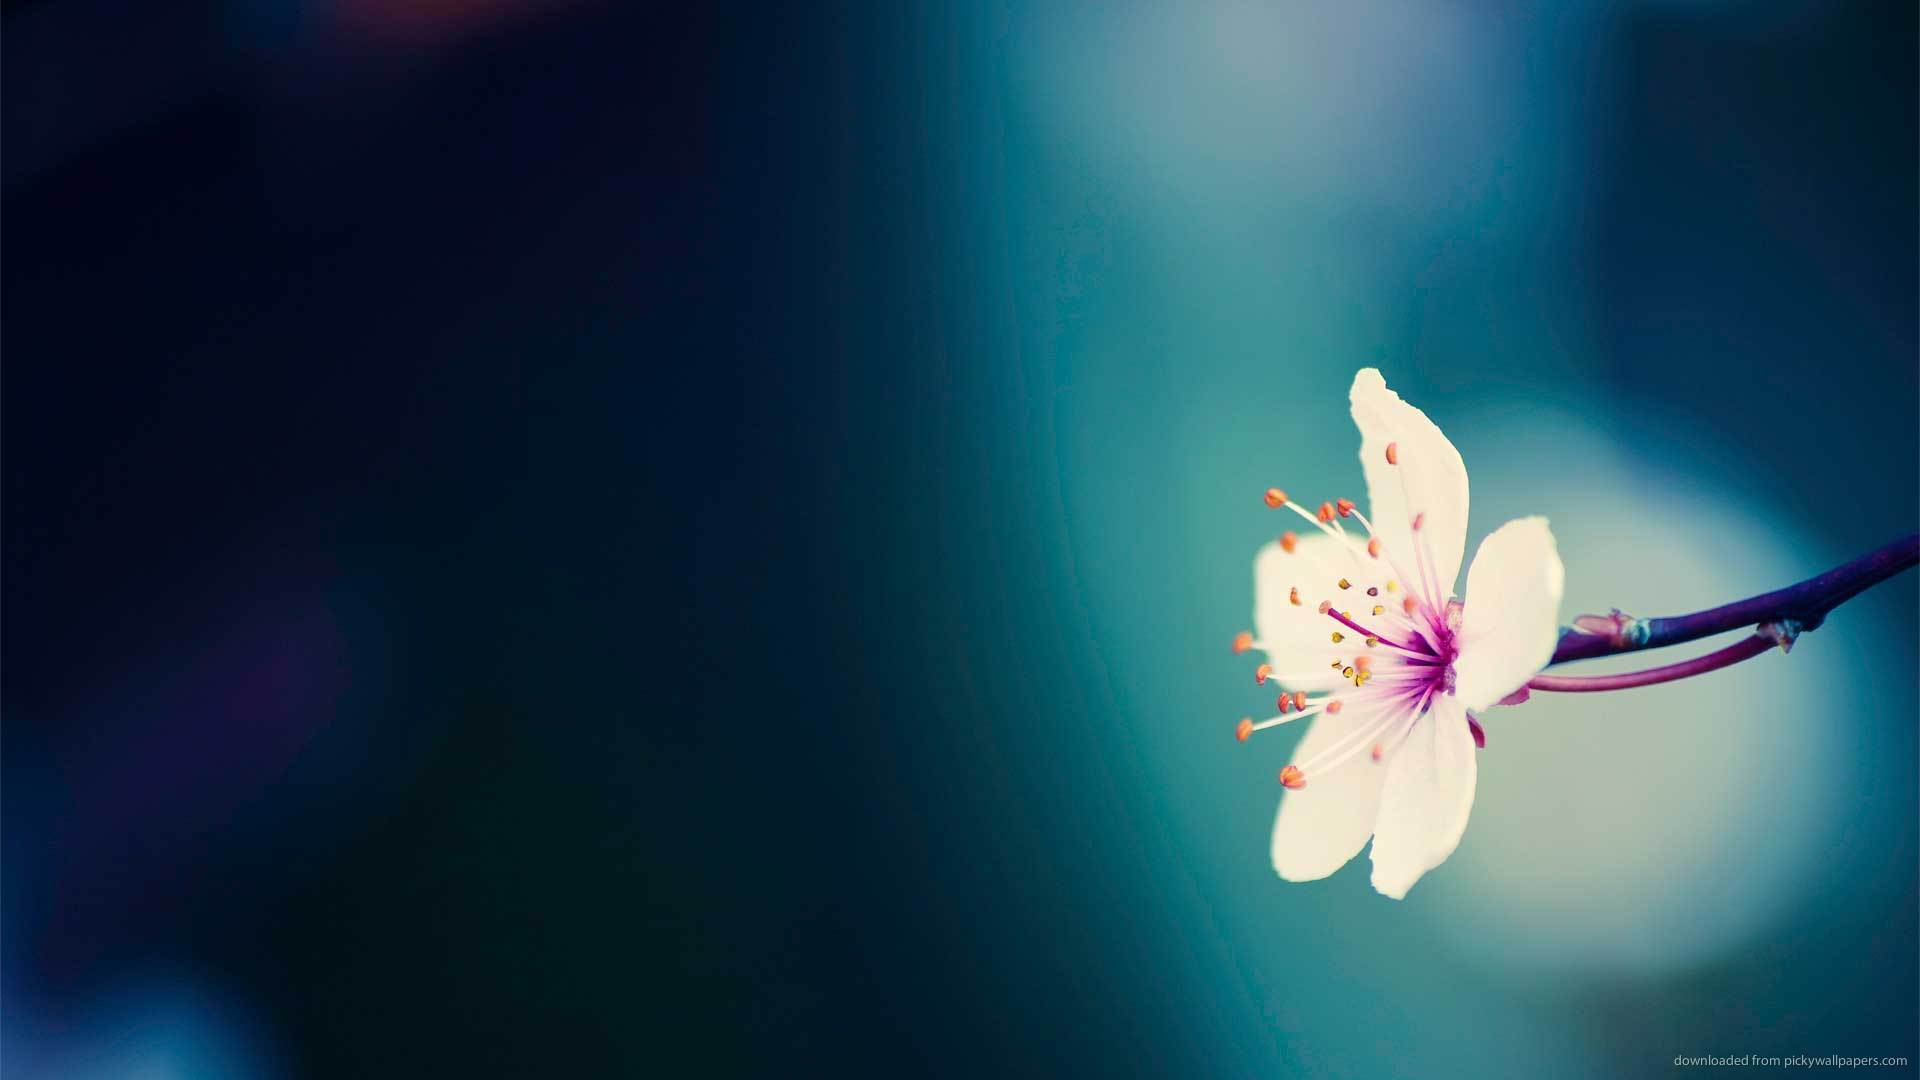 flowers spring wallpaper 1920x1080 - photo #25